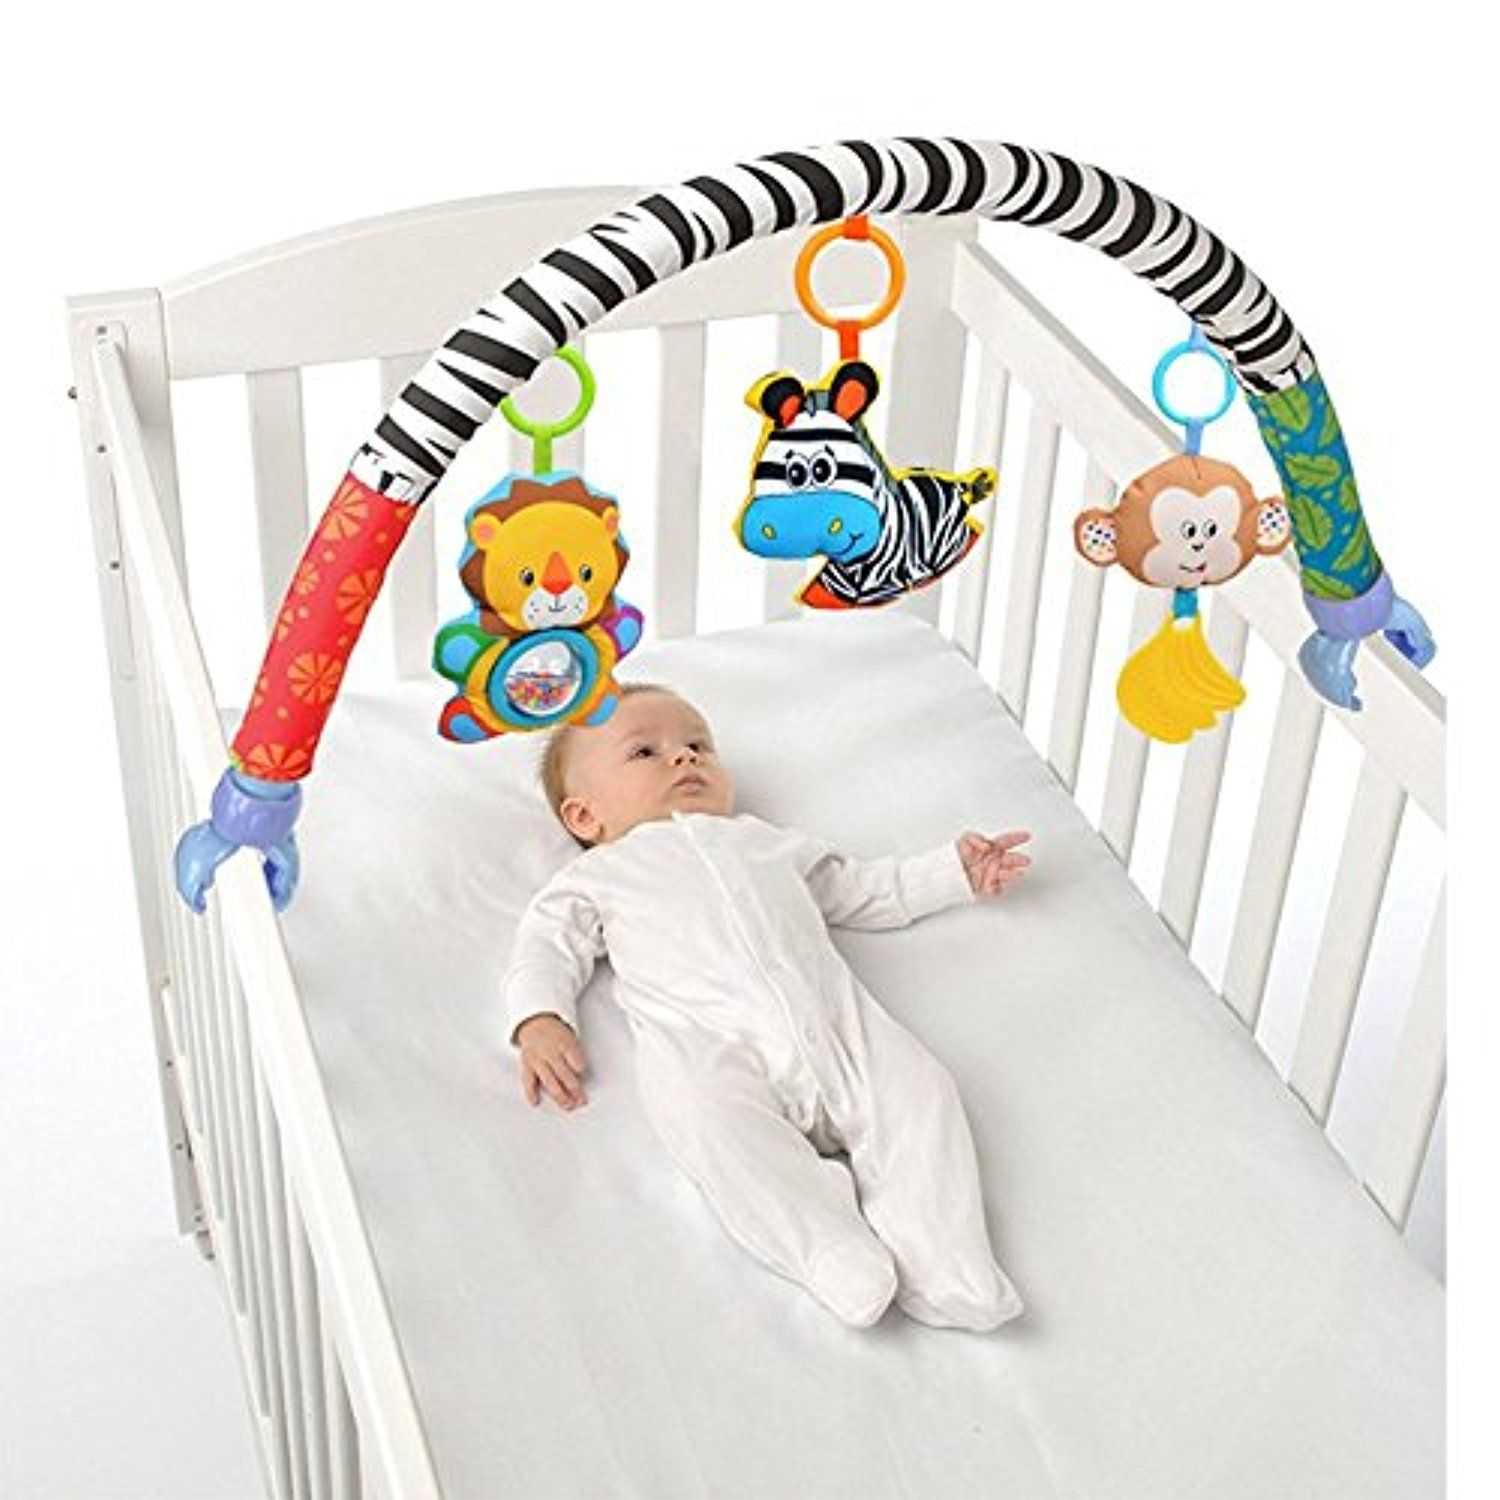 Crib activity toys for babies - Cheap Stroller Connector Buy Quality Toys Playskool Directly From China Stroller Umbrella Suppliers Sozzy Baby Stroller Bed Crib Hanging Toys For Tots